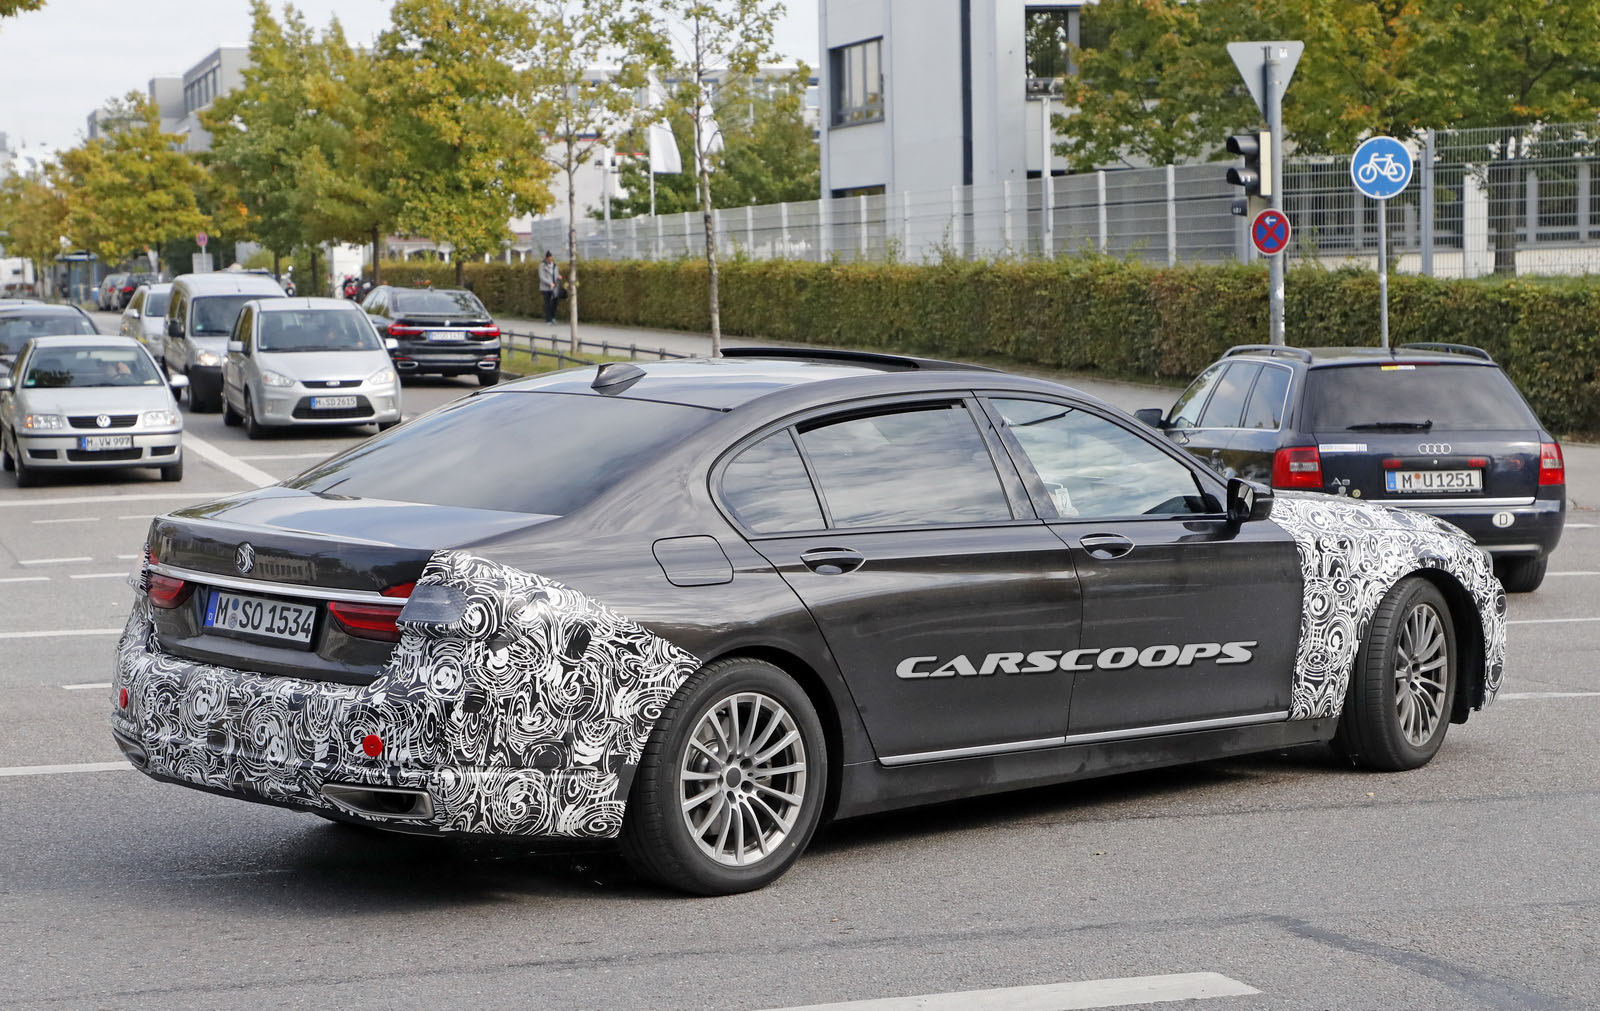 Facelifted 2019 Bmw 7 Series To Adopt More Dynamic Design